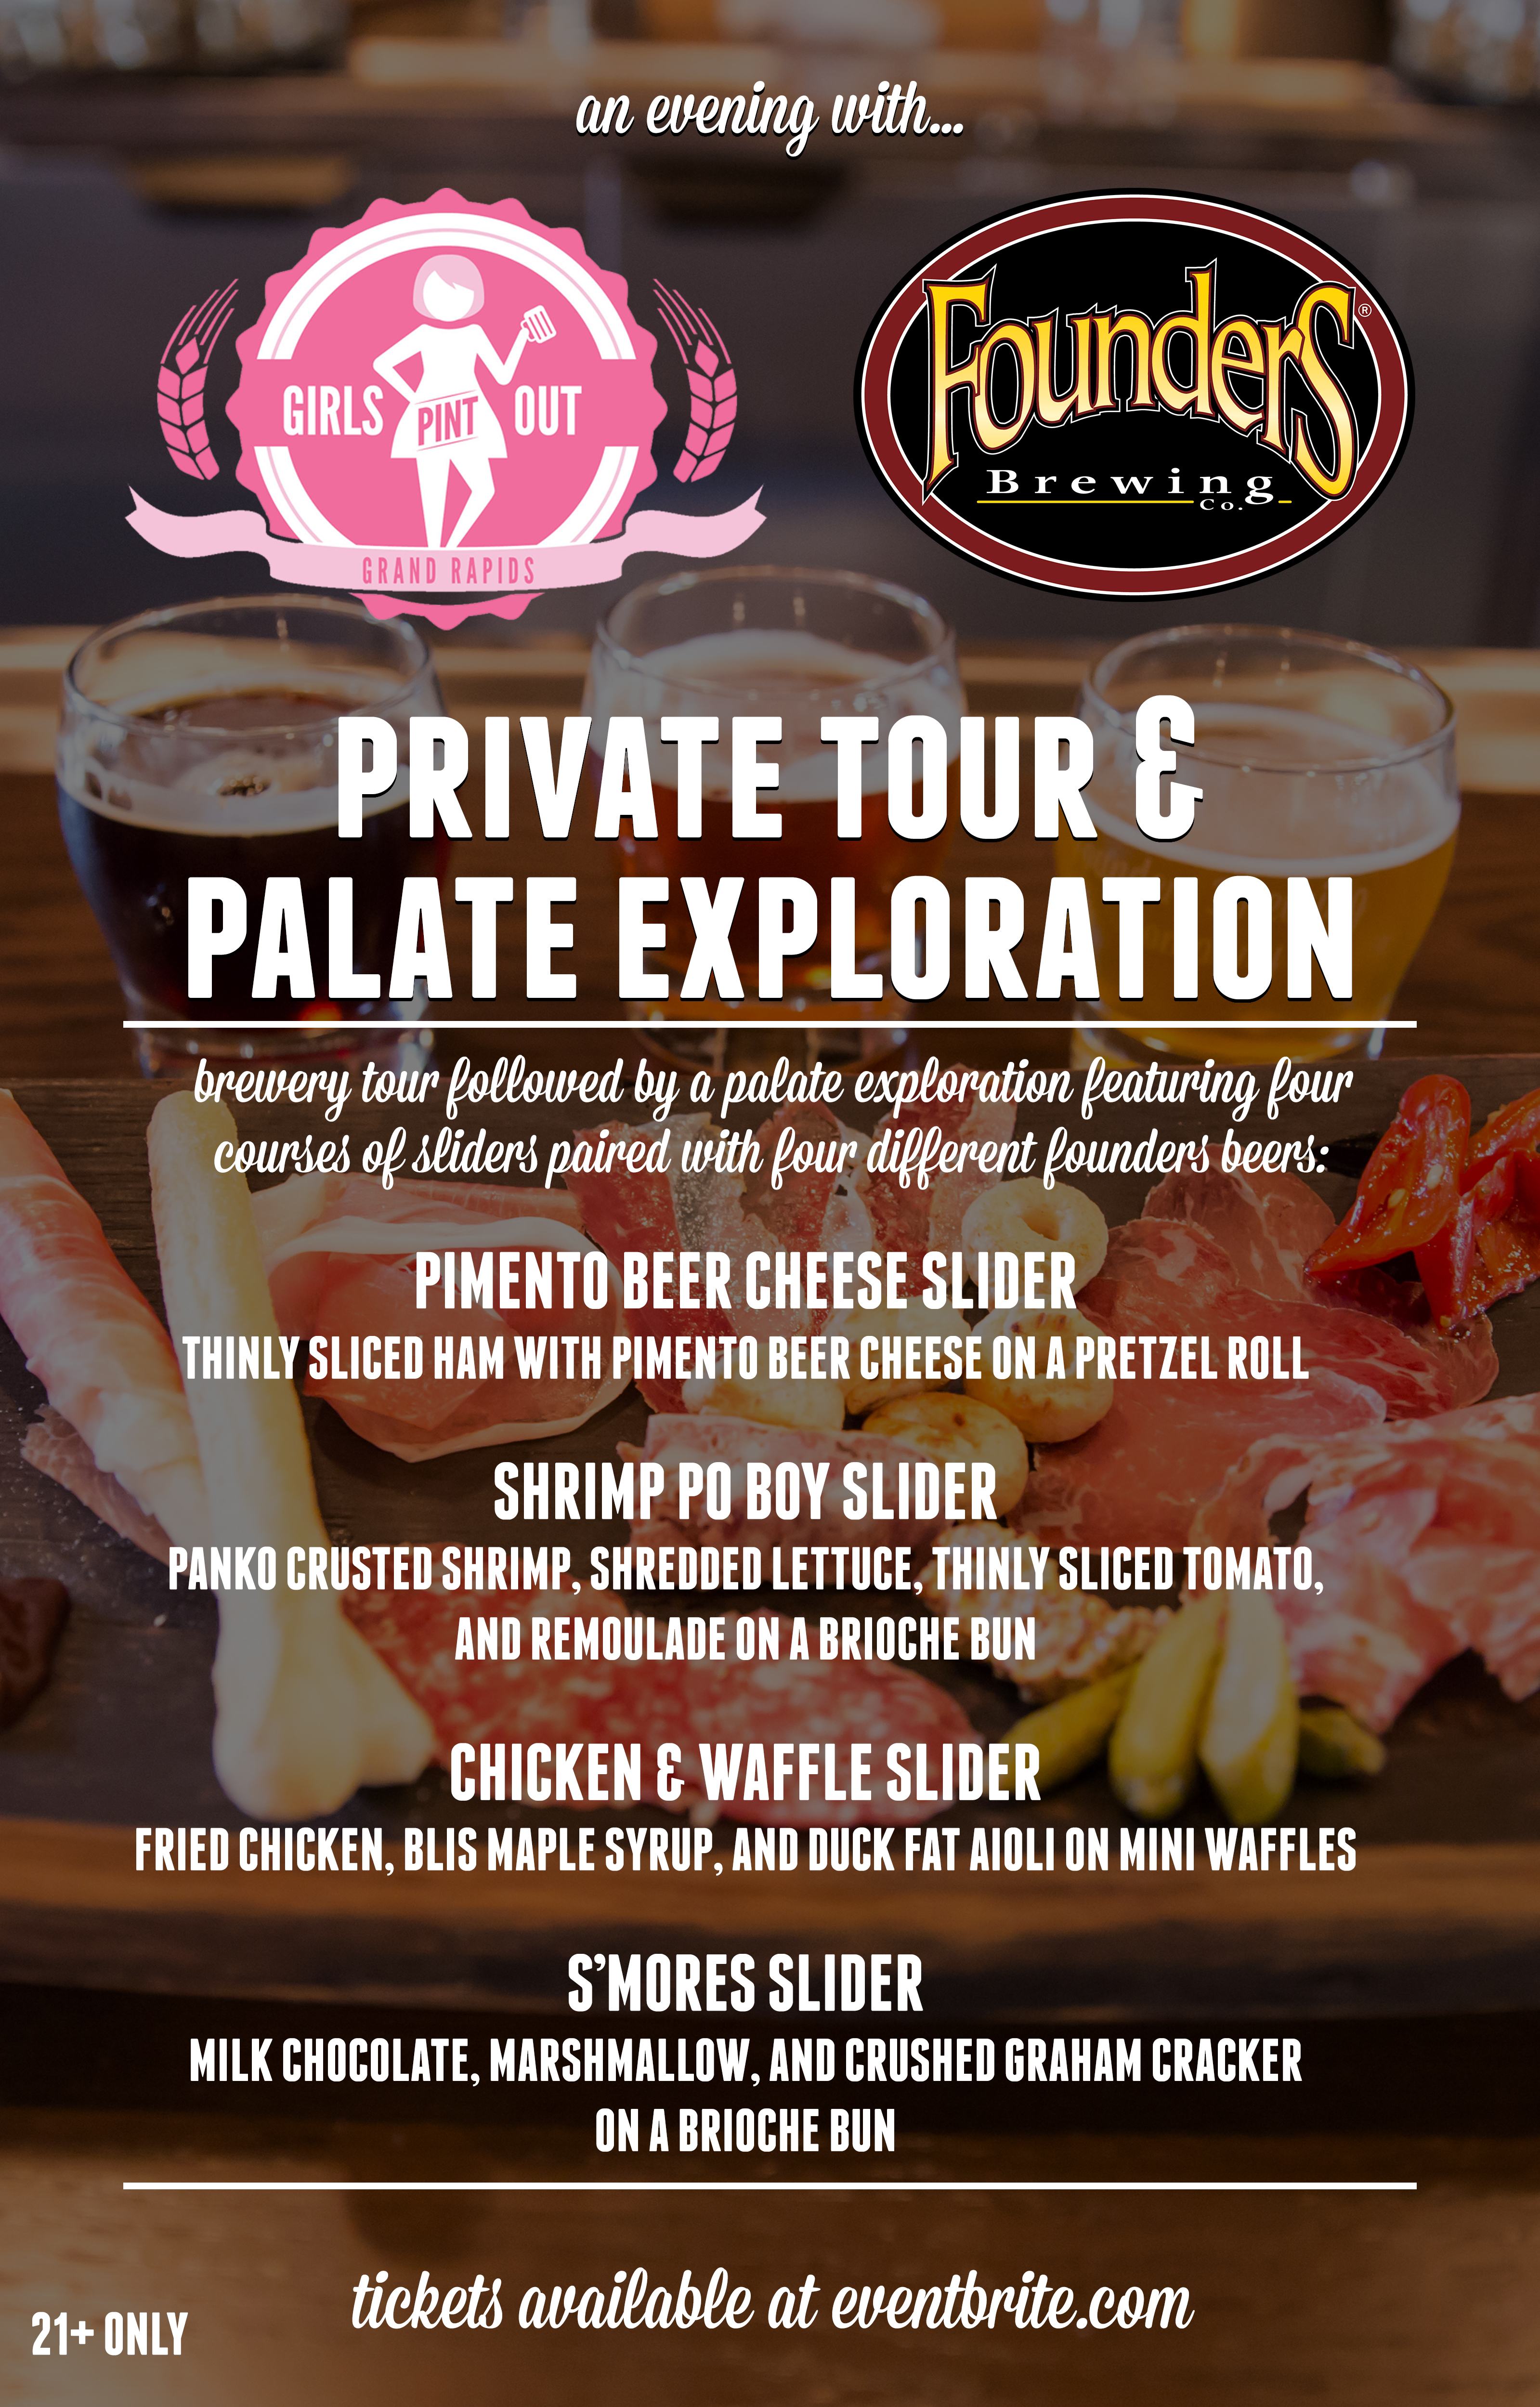 Founders Private Tour & Exploration event poster